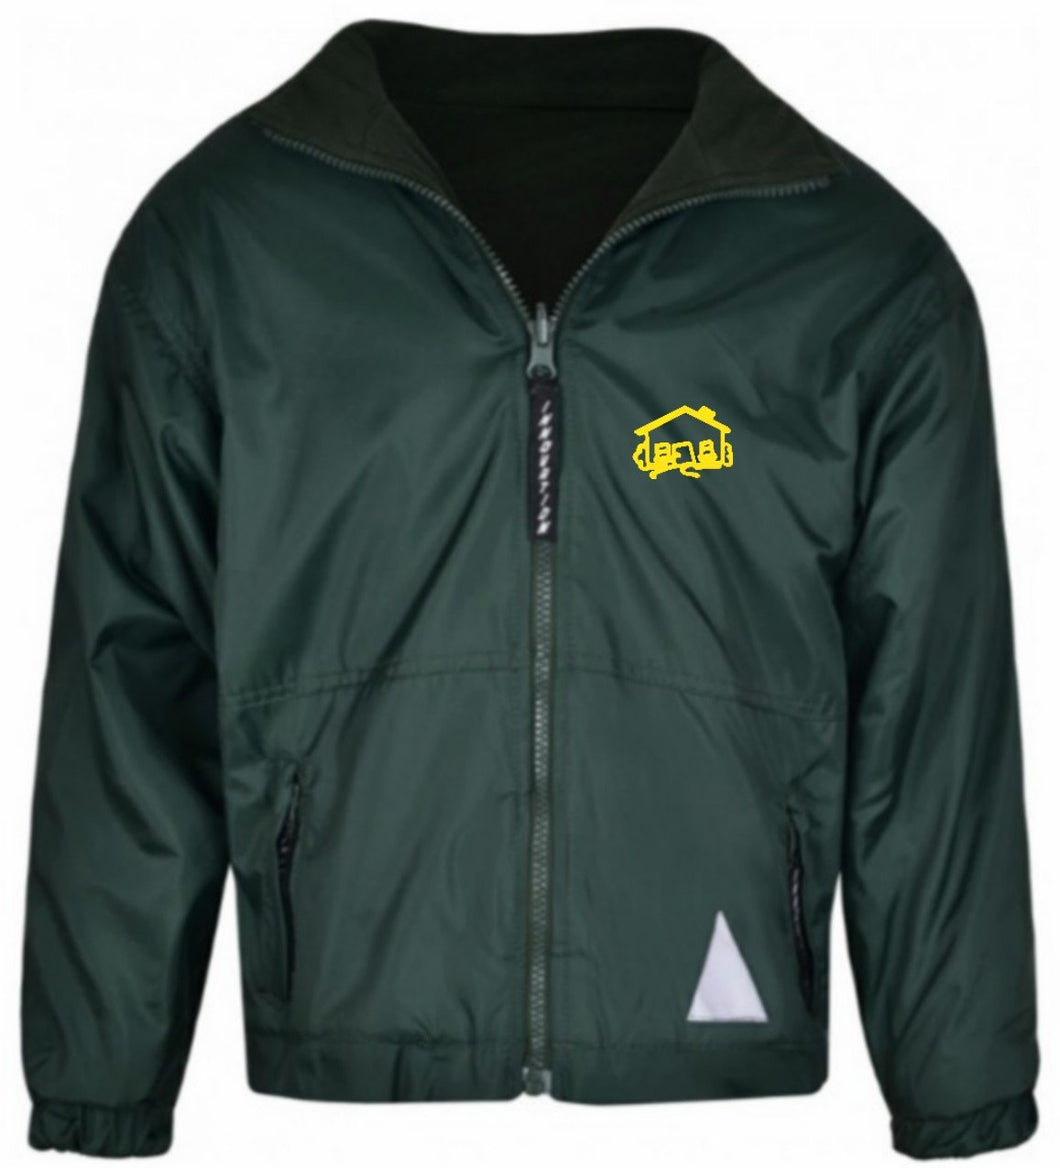 Fairhouse Community School - Bottle Reversible Fleece Jacket with School Logo - Schoolwear Centres | School Uniform Centres